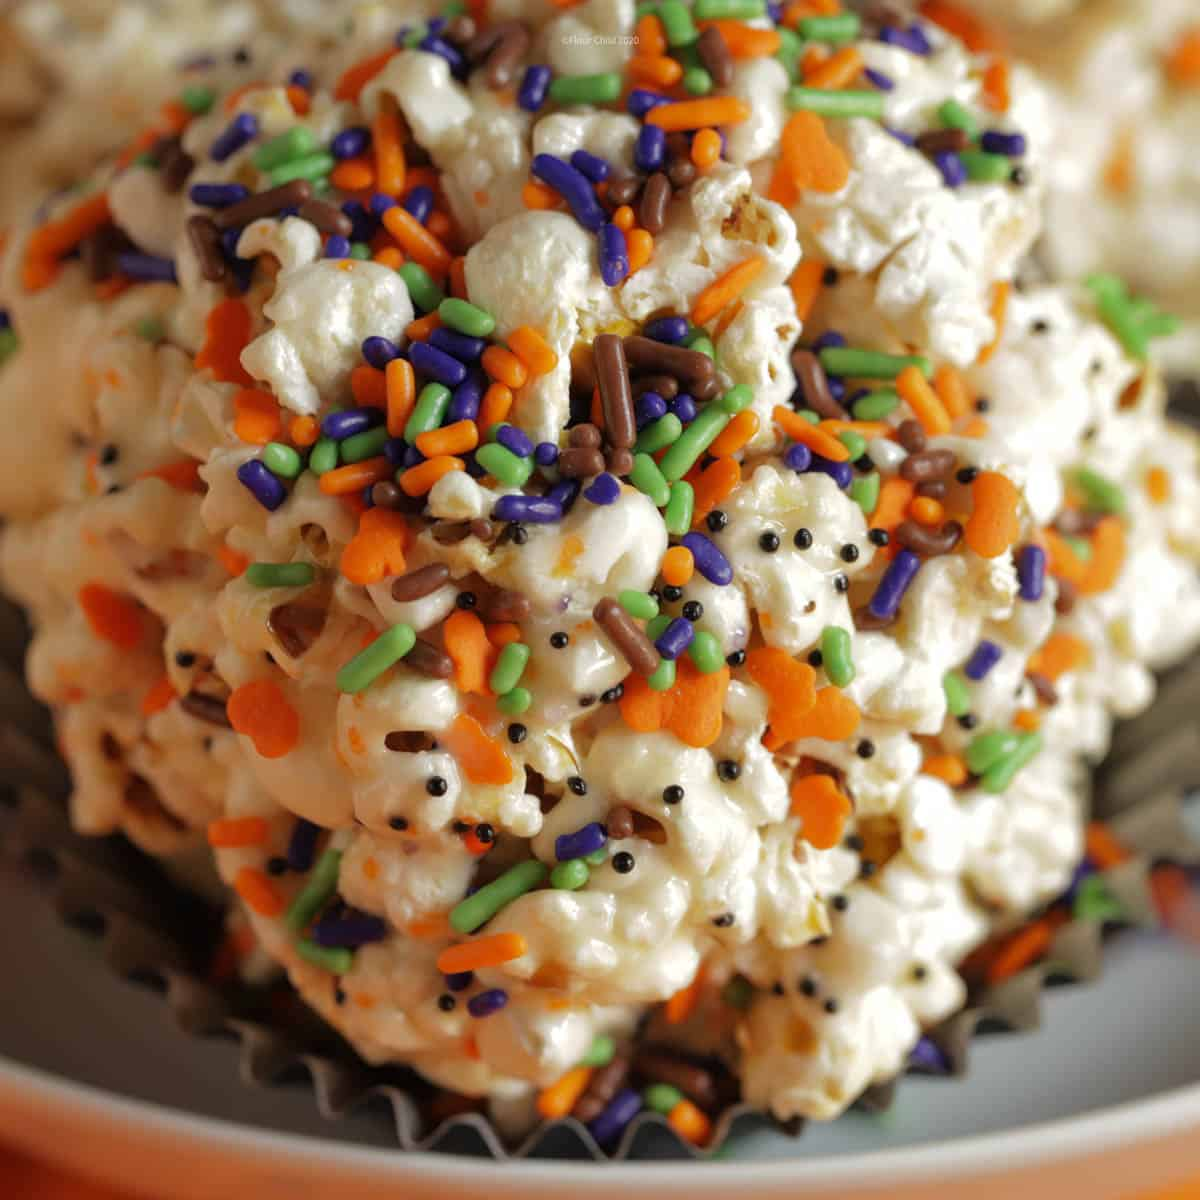 A close up image of a popcorn ball with Halloween colored sprinkles on it in black, orange, green and purple